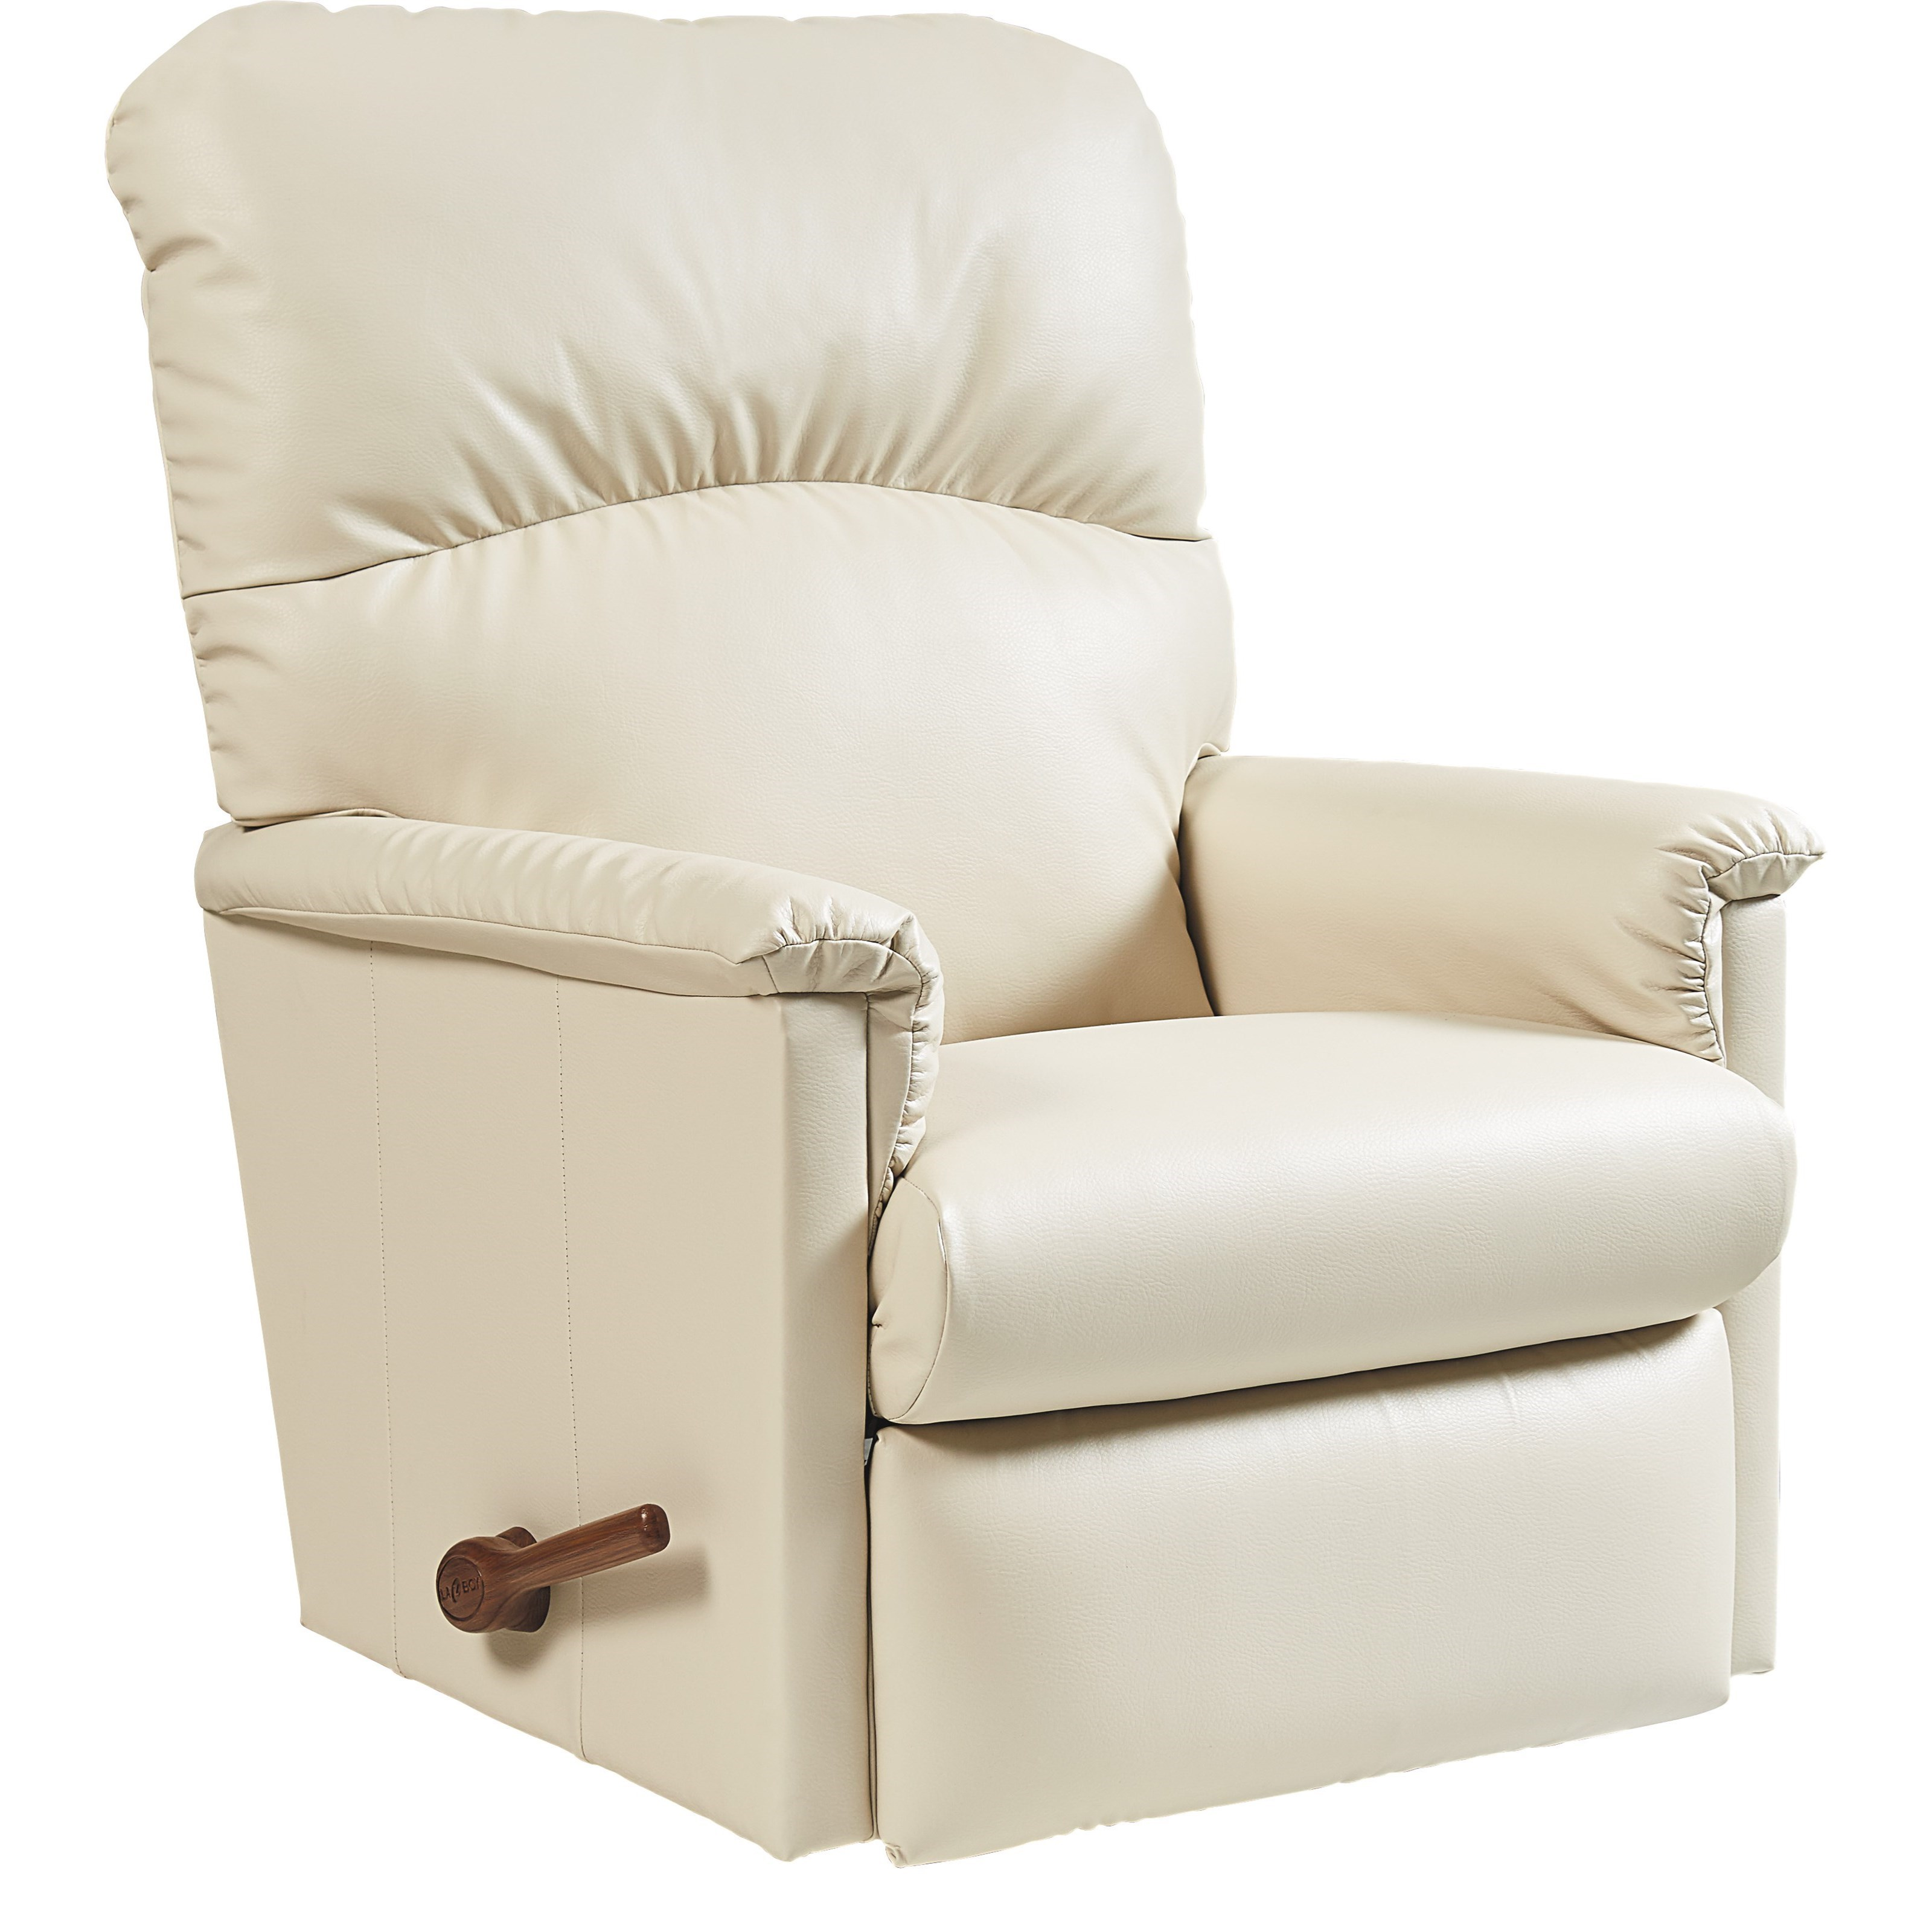 Recliners Collage Wall Recliner by La-Z-Boy at Godby Home Furnishings